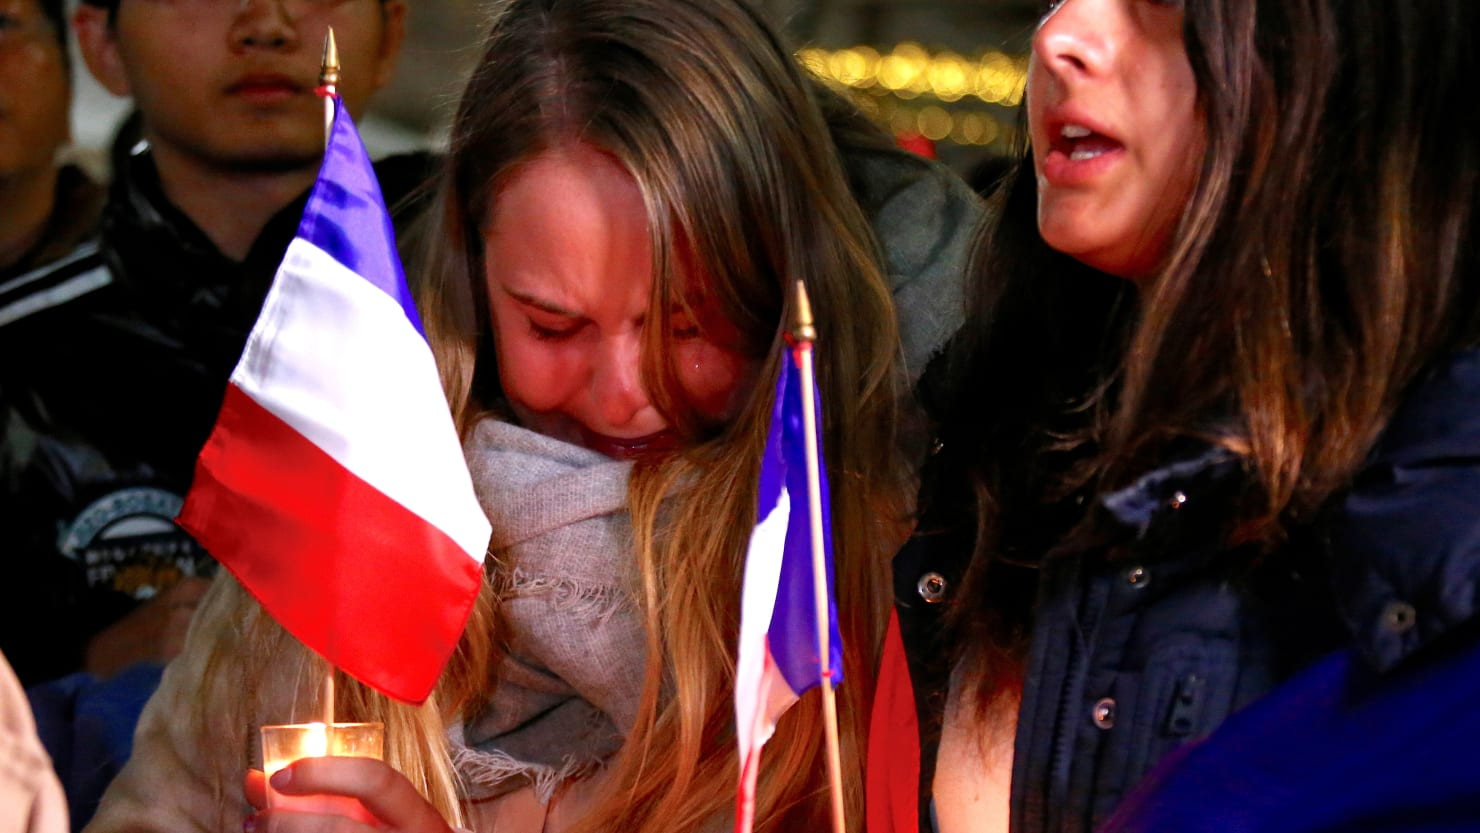 World Mourns Tragedy in Nice, France (PHOTOS)